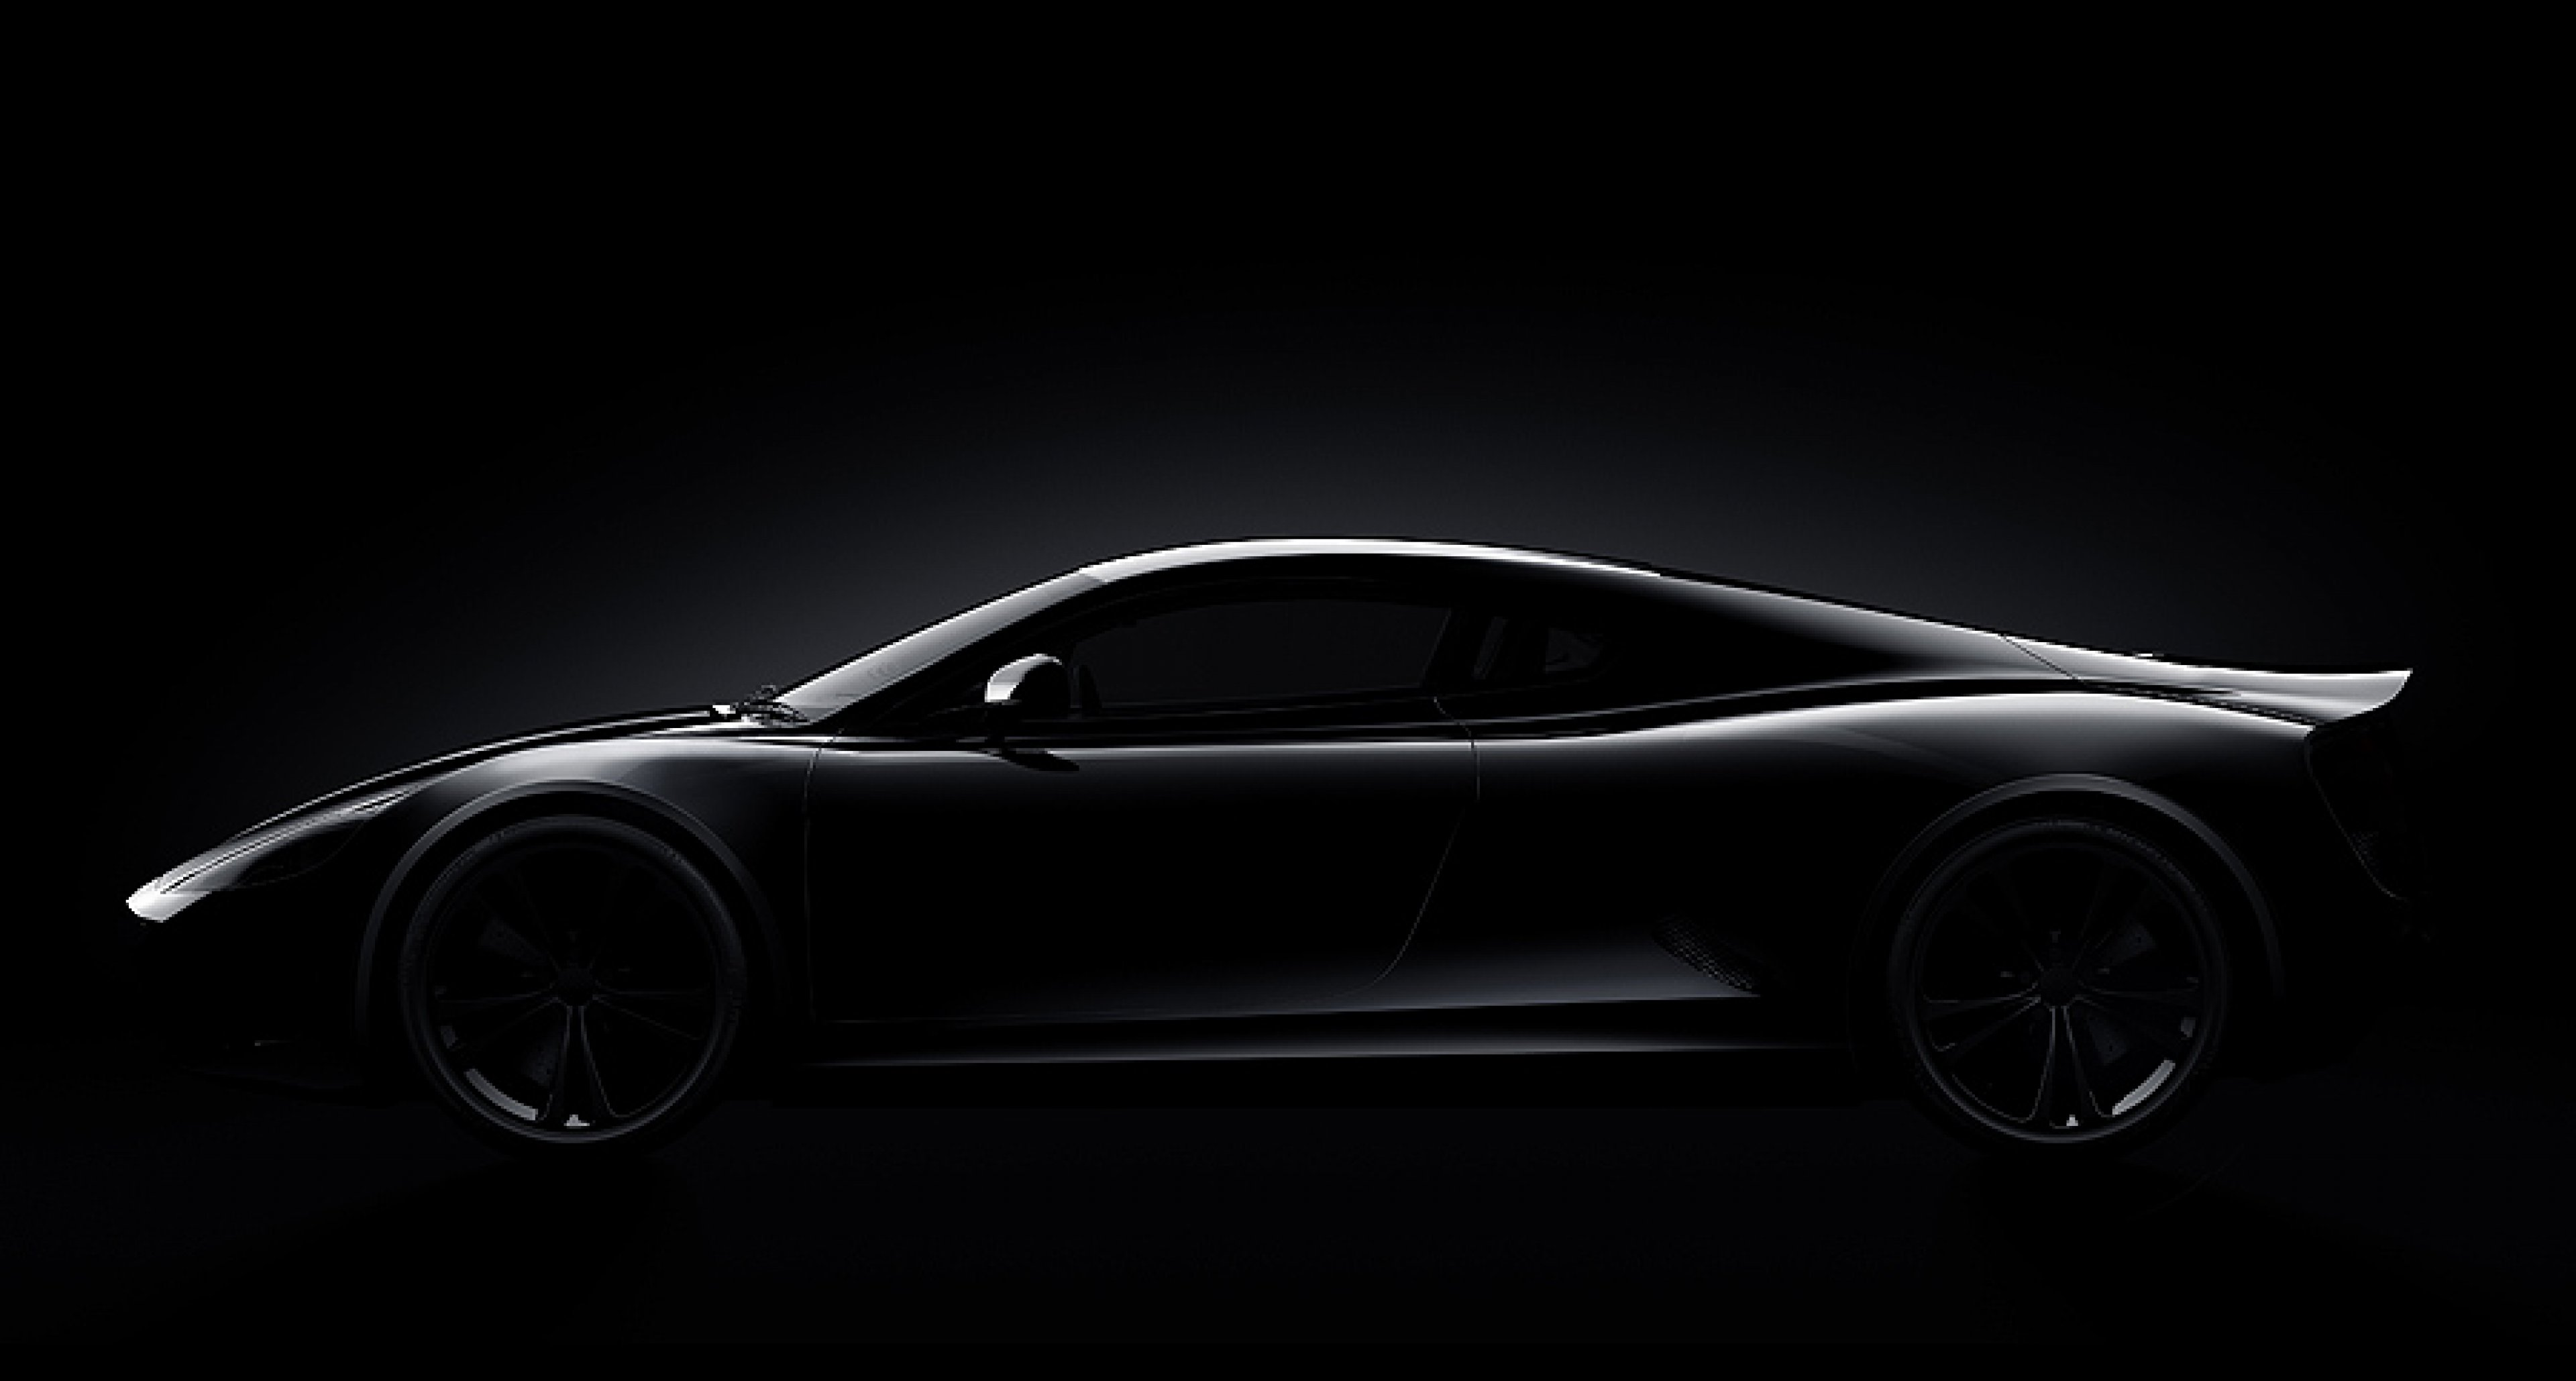 Sports Car Project HBH: Men on a Mission